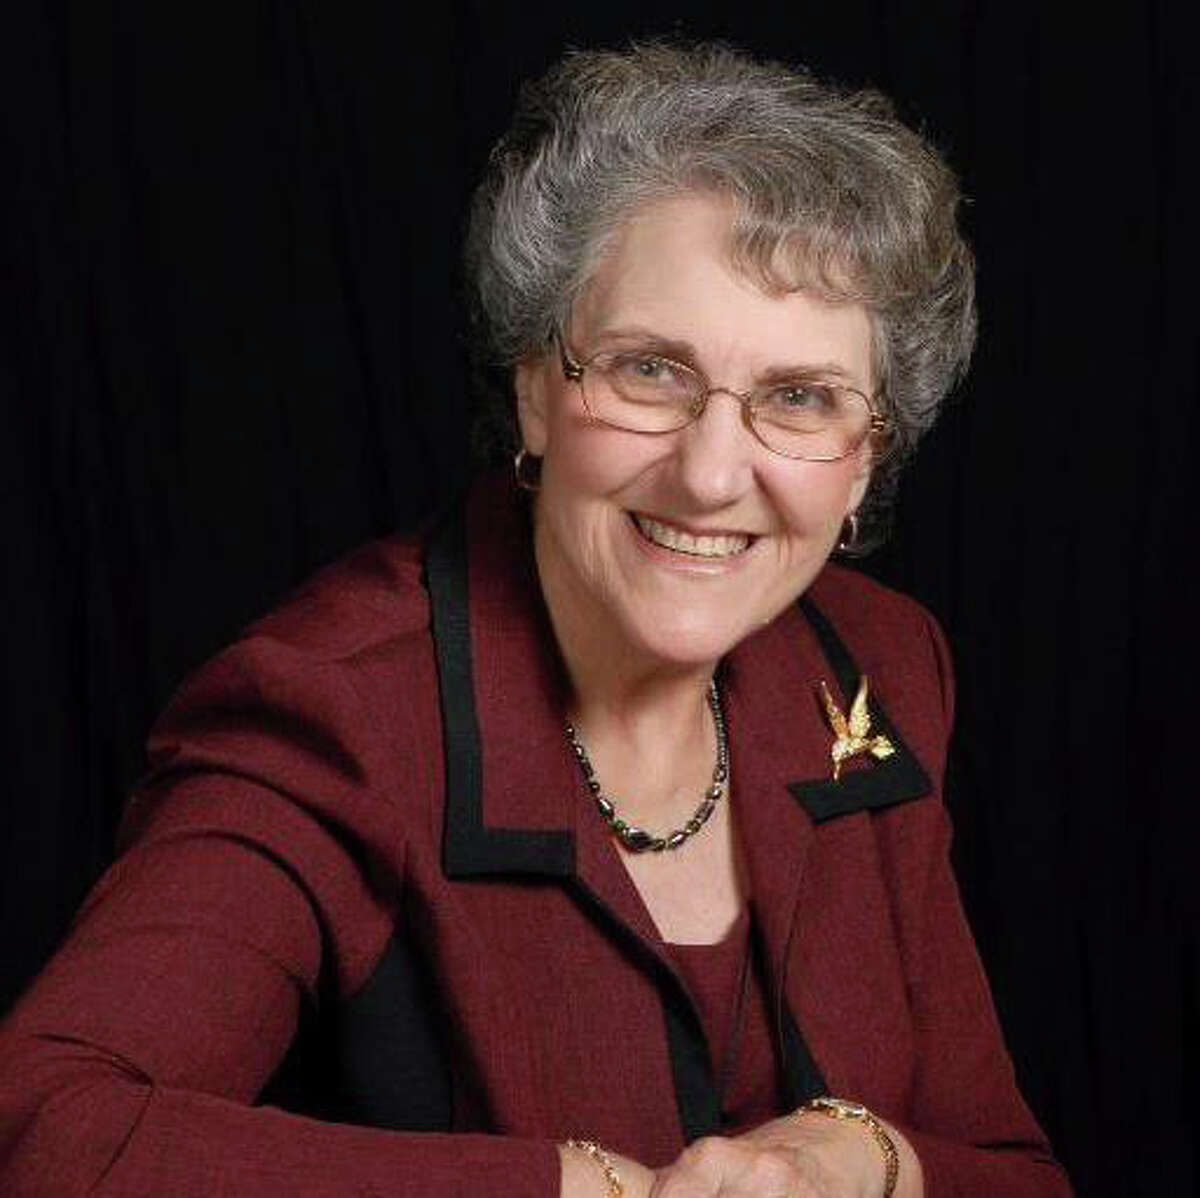 Mary Lou Bruner (Photo from Mary Lou Bruner for State Board of Education)